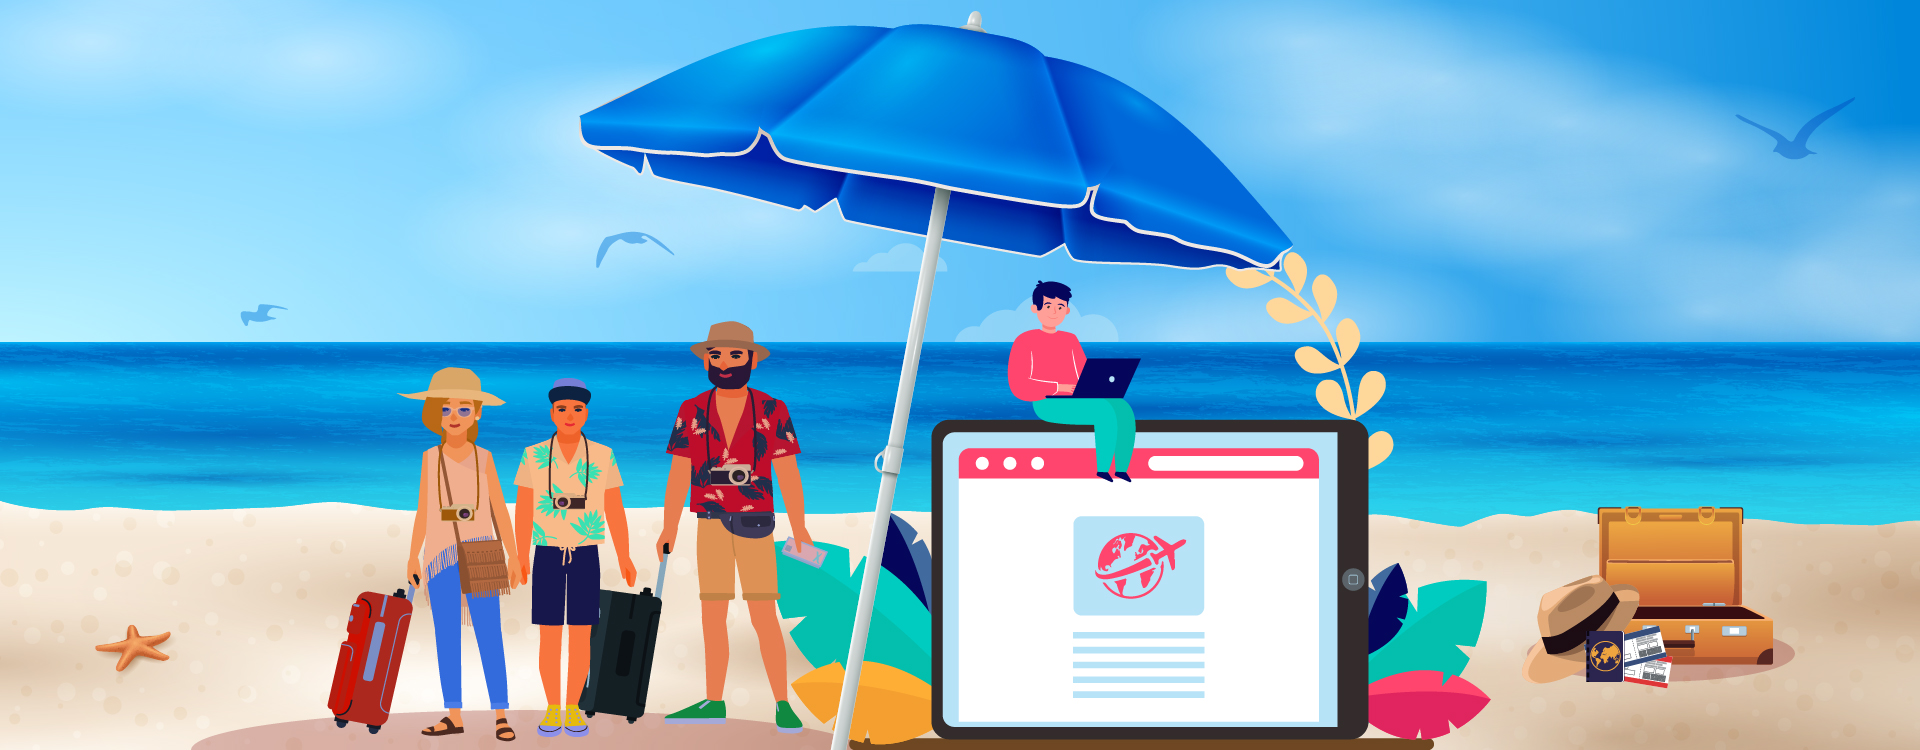 The e-commerce companies are diversifying into online travel industry.